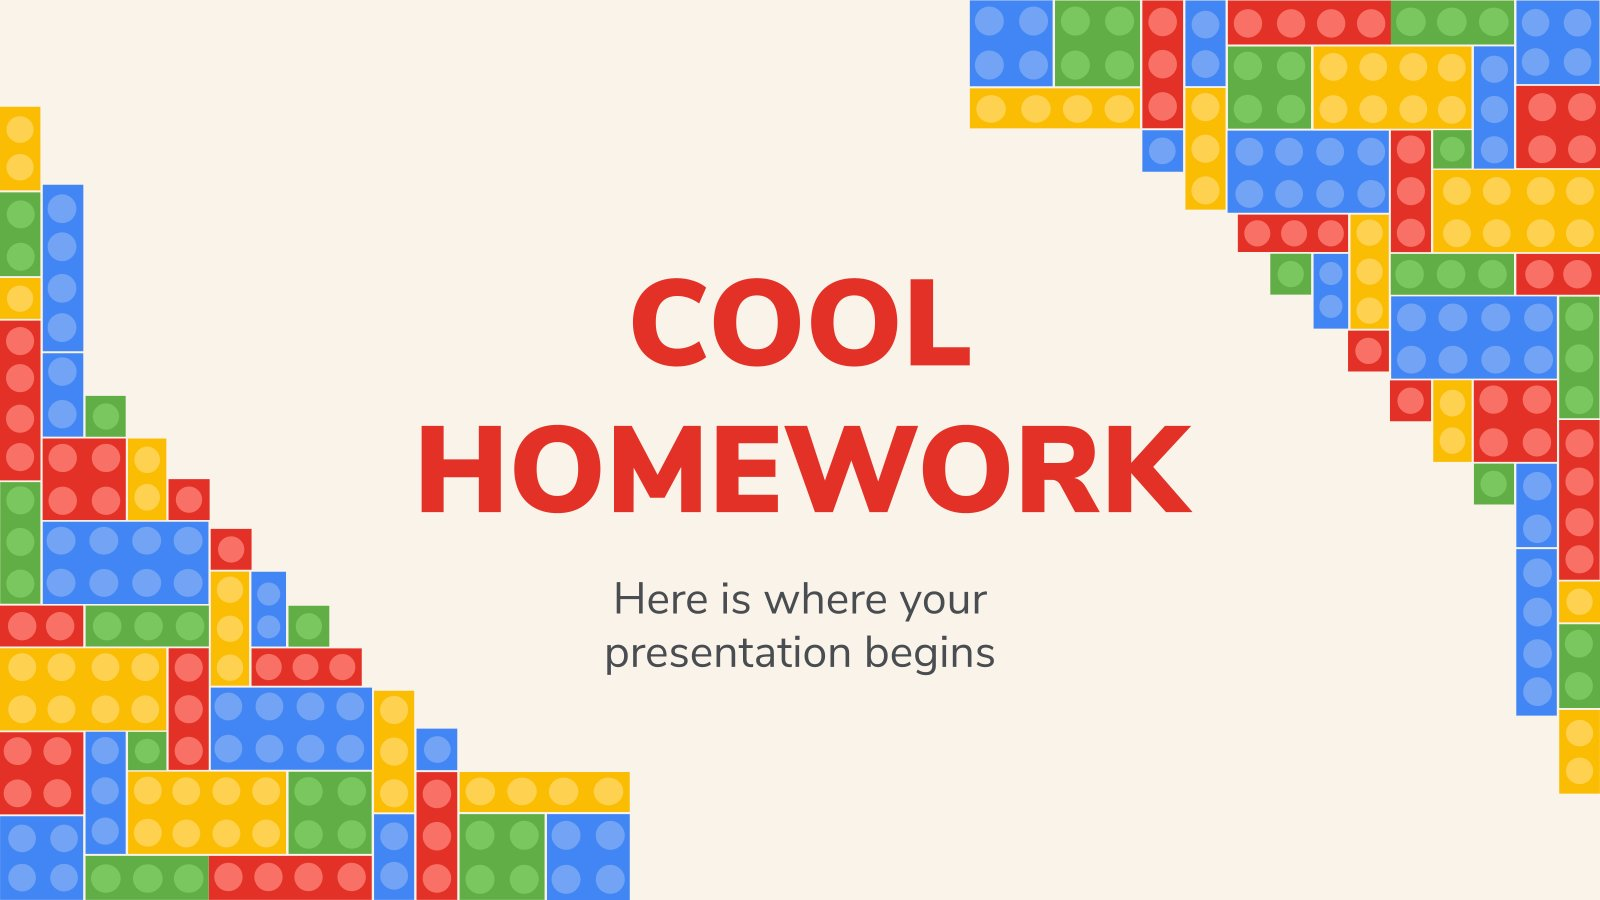 Cool Homework presentation template